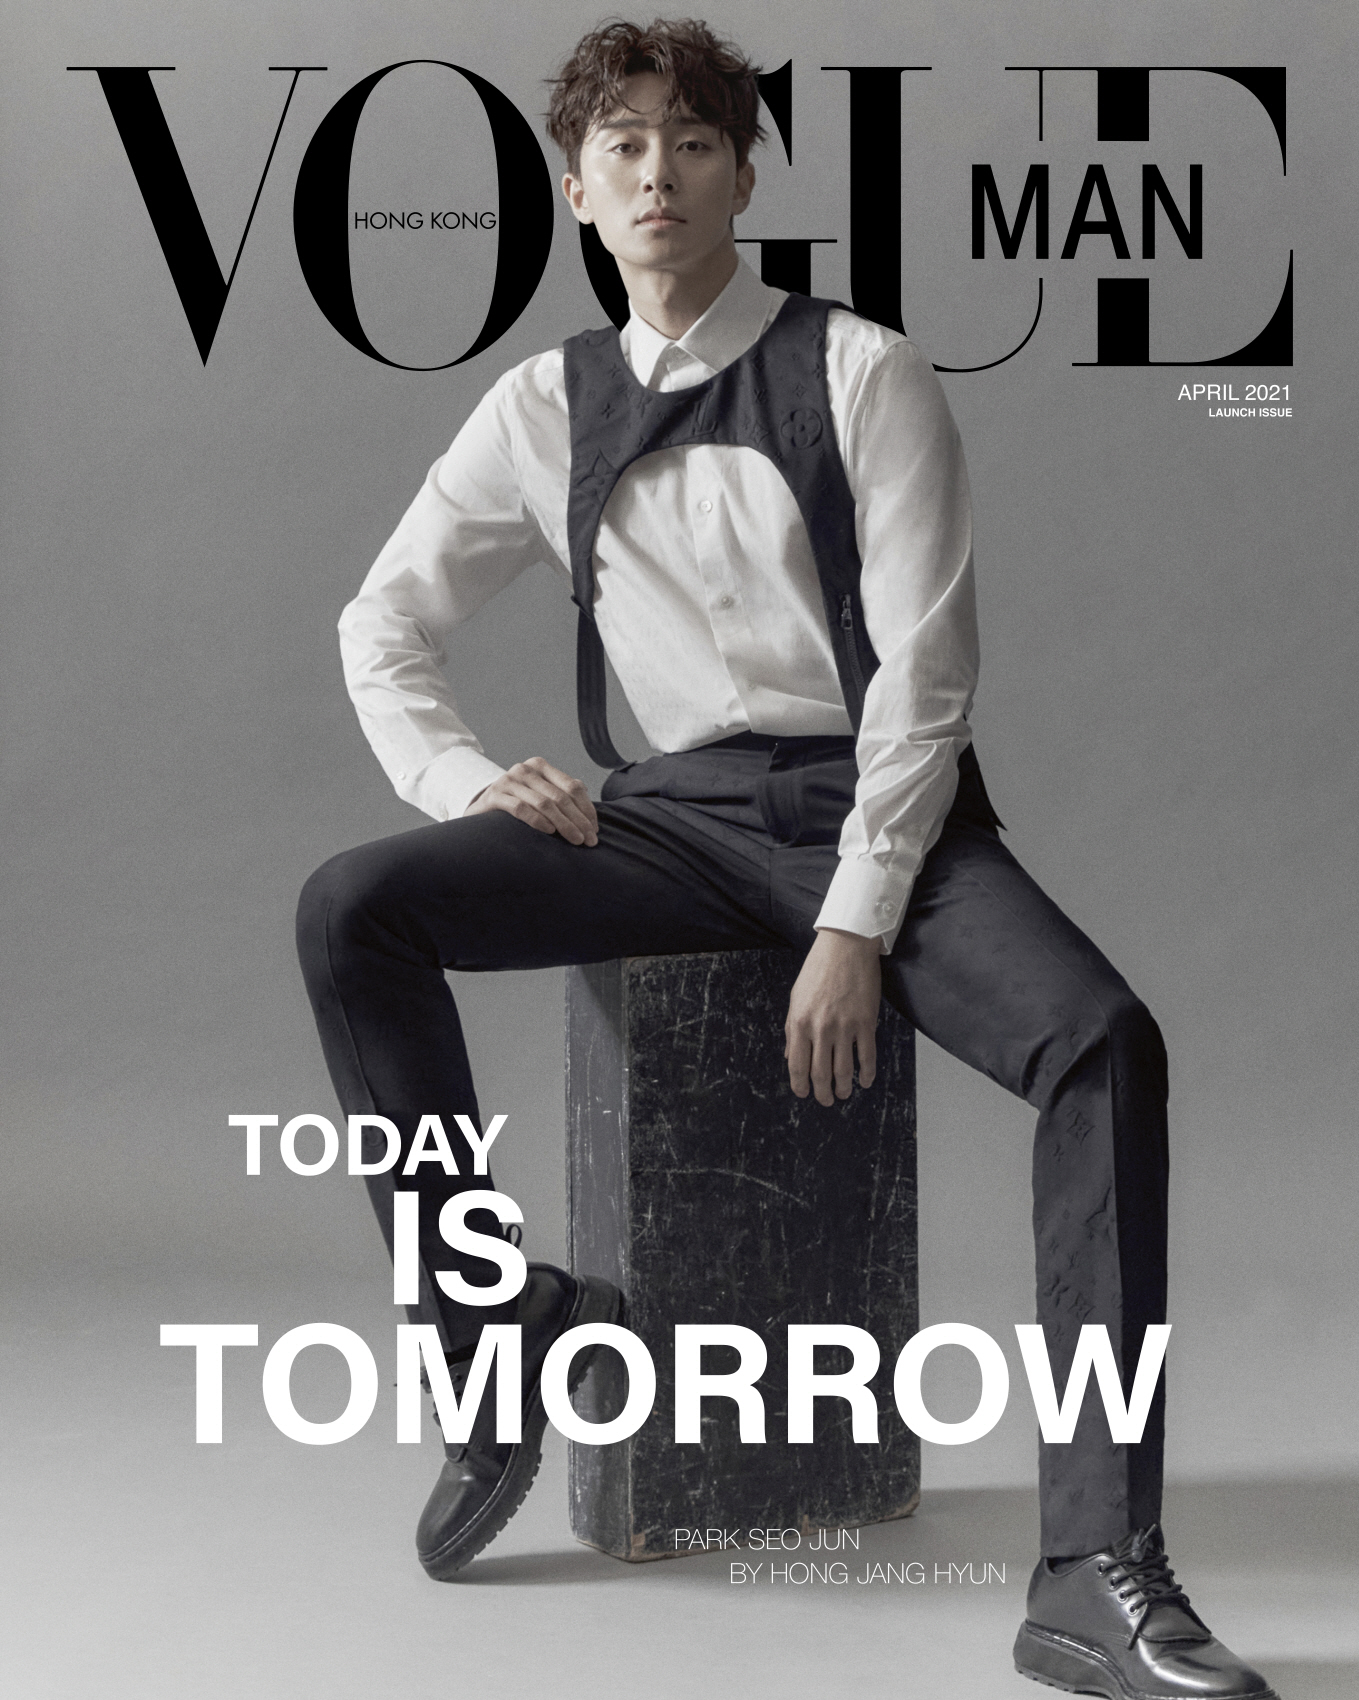 Vogue Man Hong Kong x Park Seo Jun